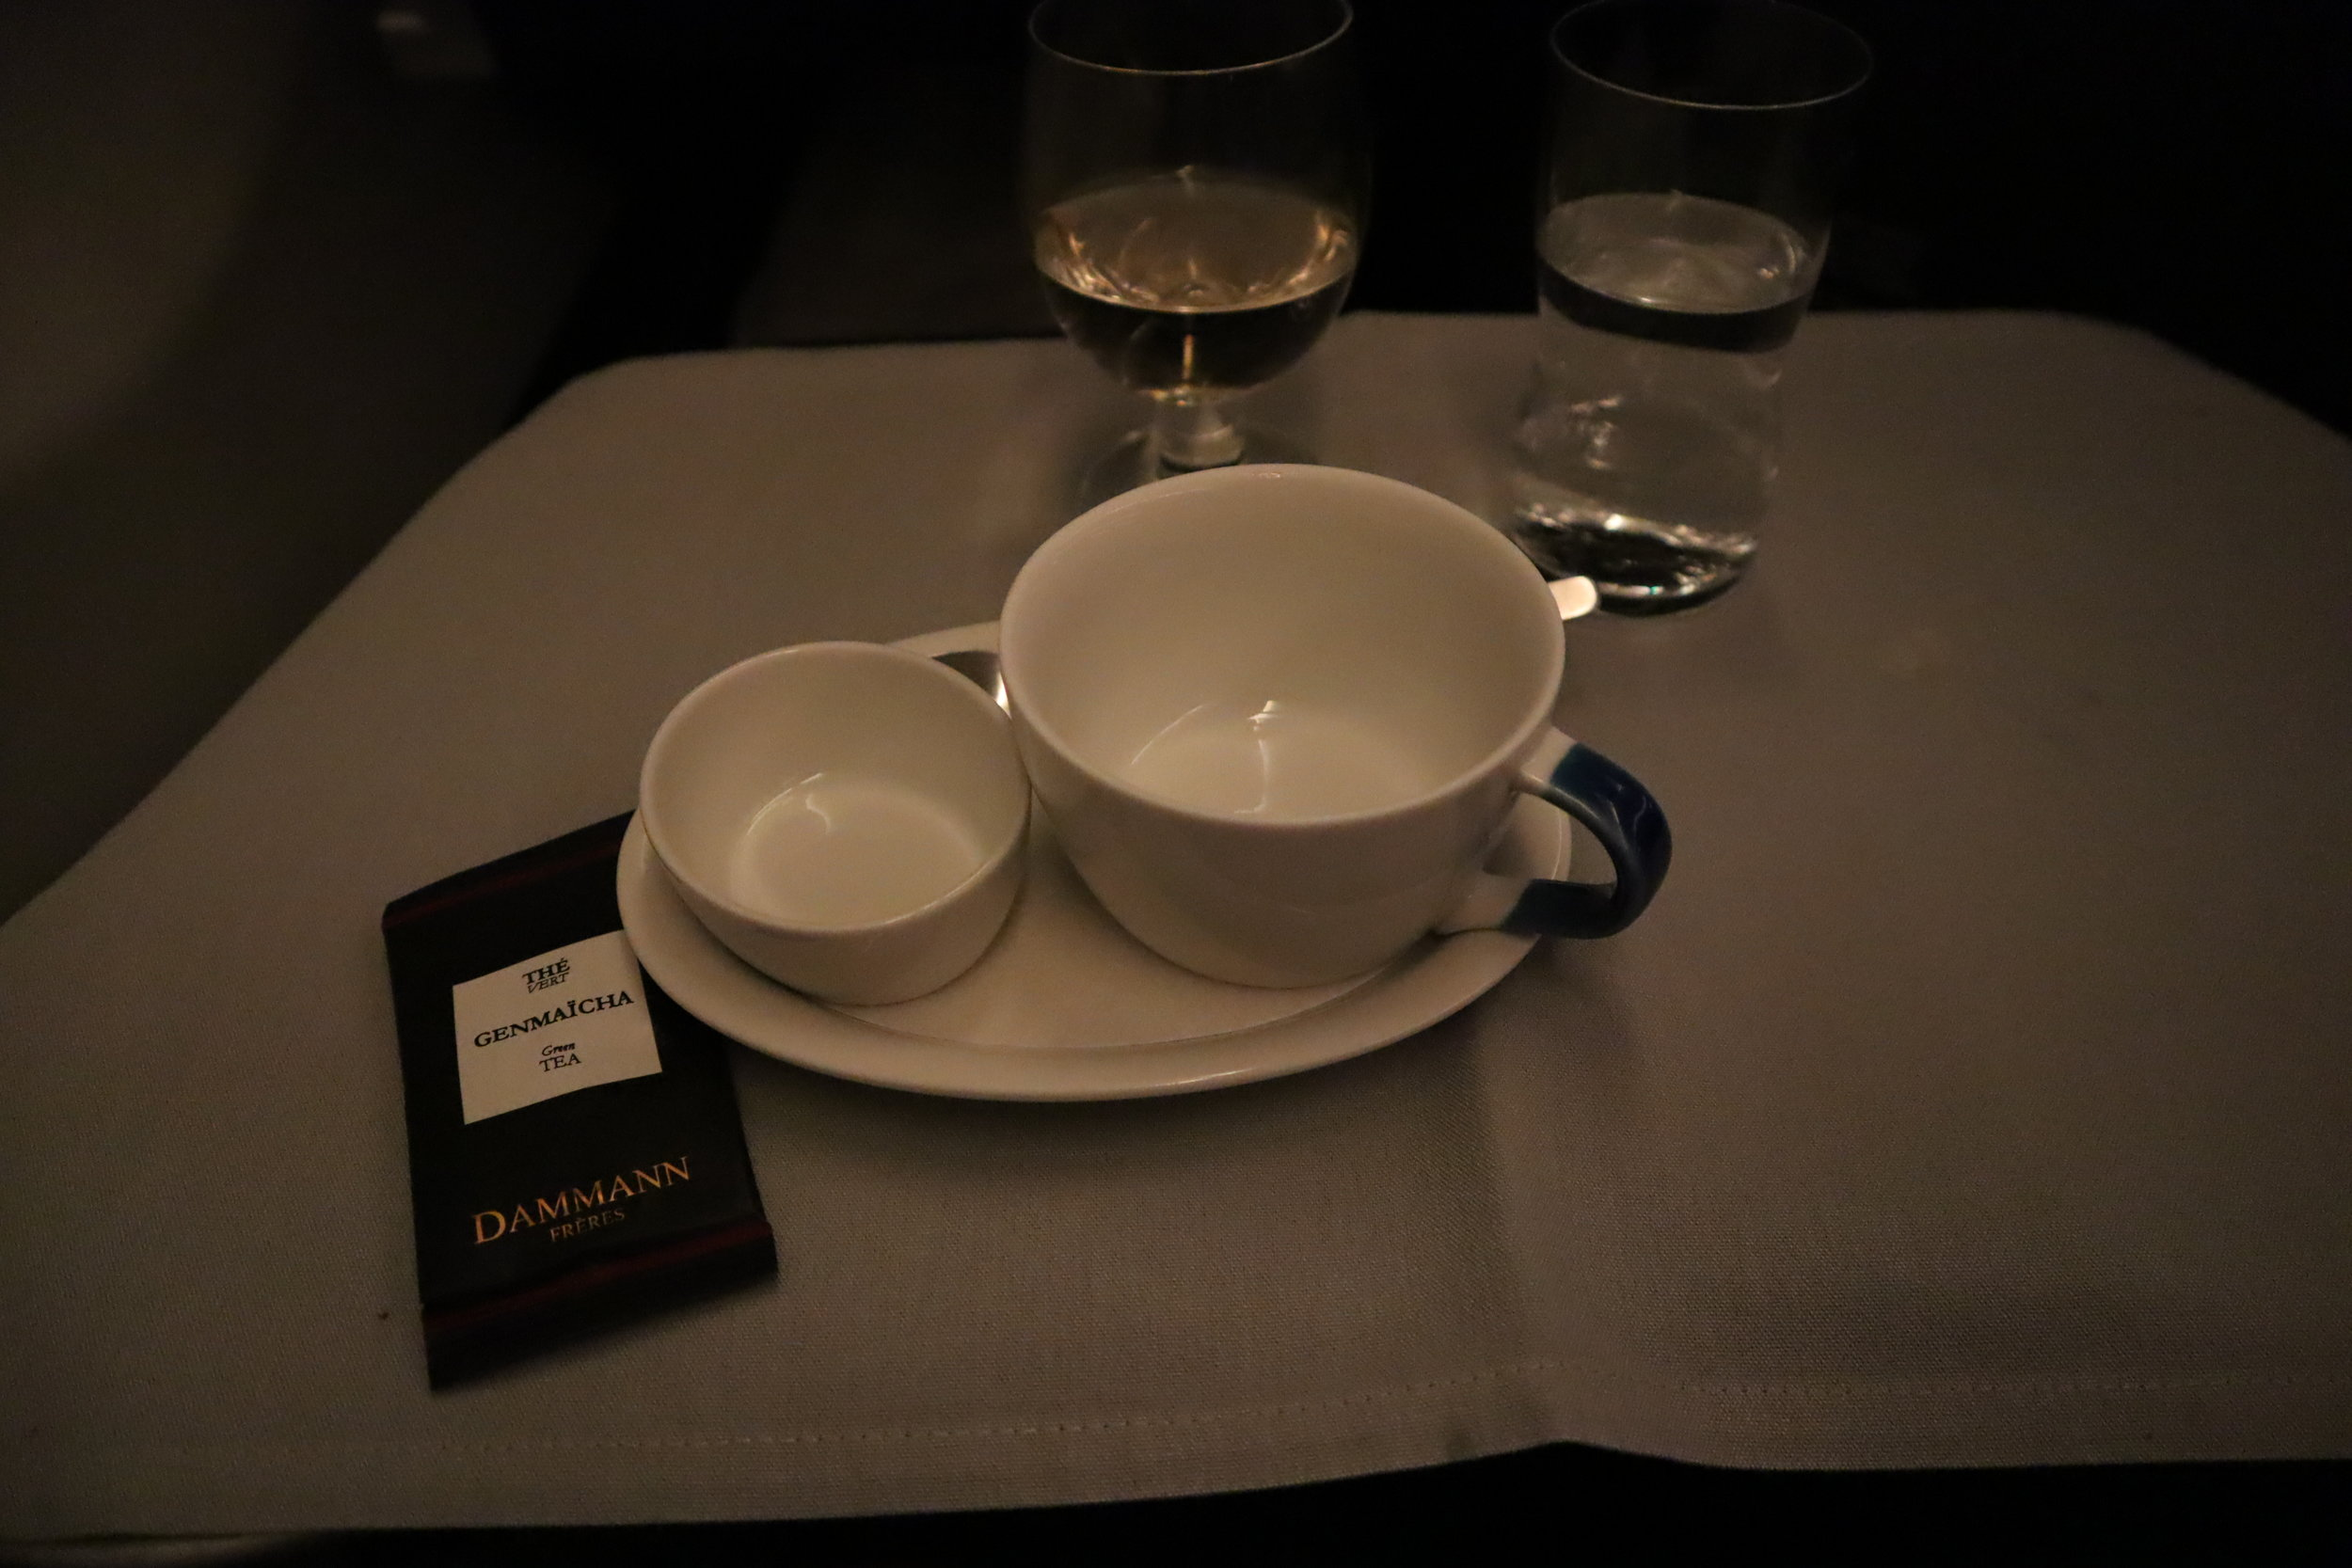 SAS business class – Genmaicha green tea by Dammann Frères